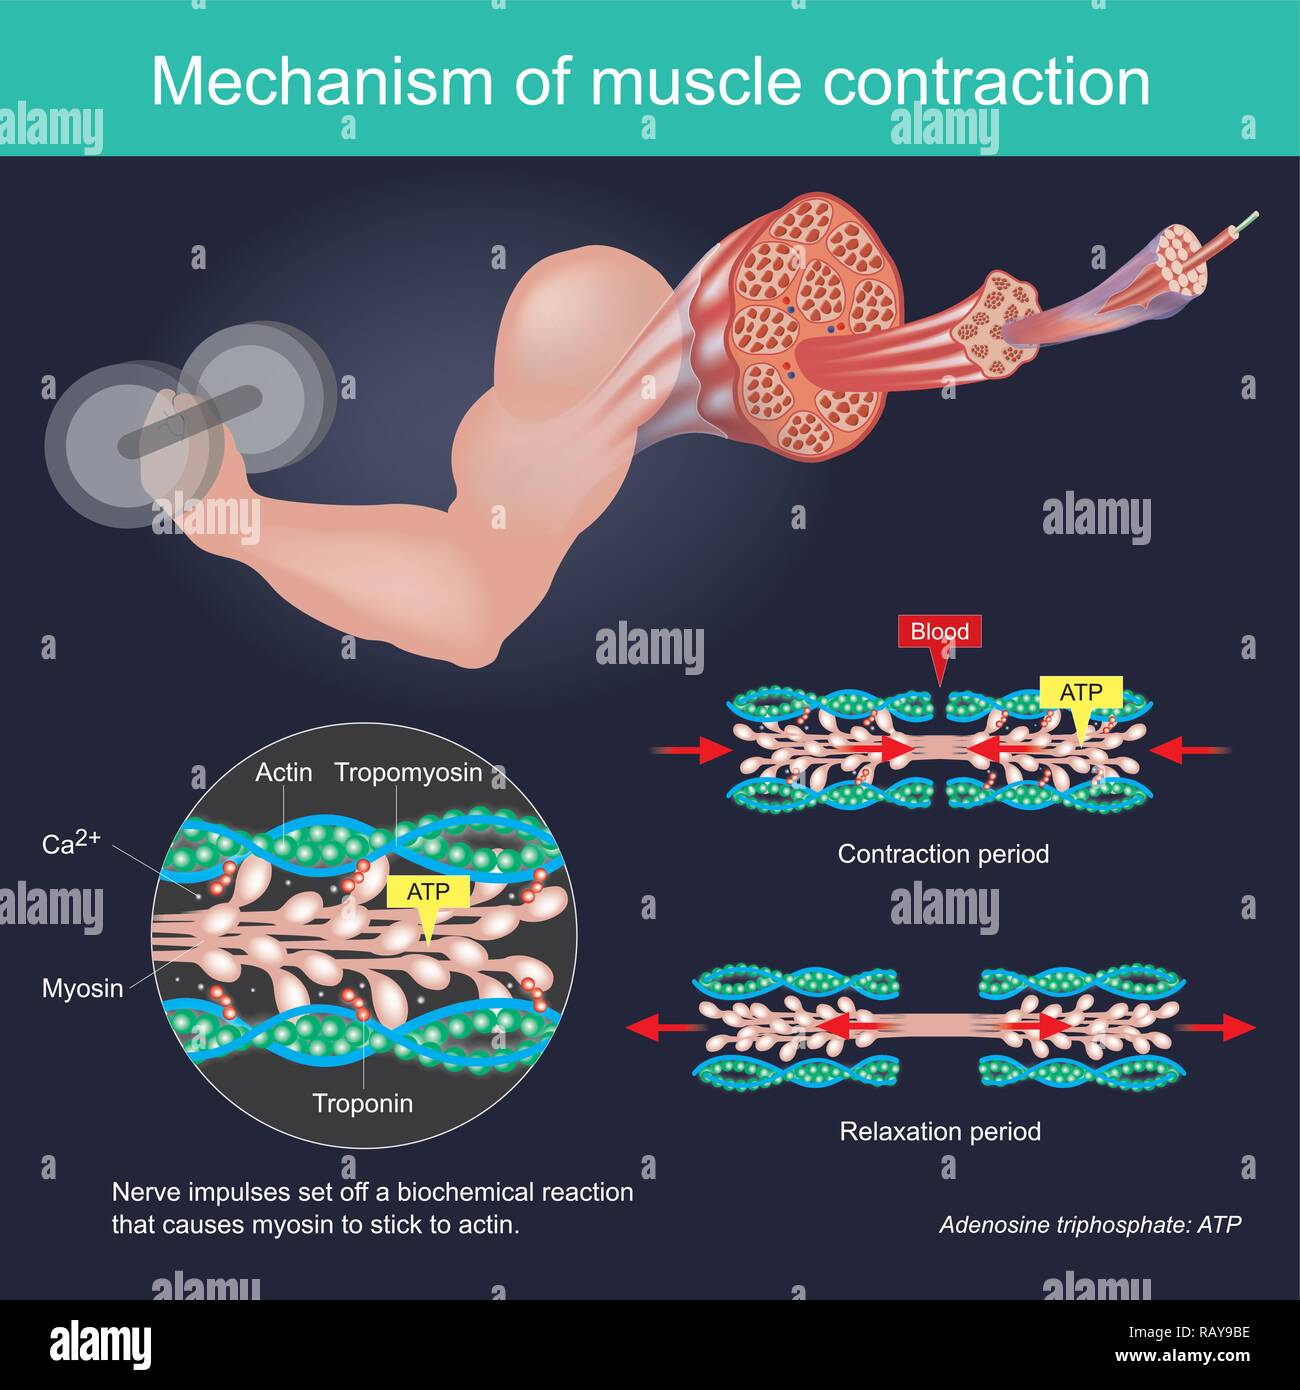 The muscle contraction as a result of Nerve impulses set off a biochemical reaction that causes myosin to stick to actin. Human body infographic. Stock Vector